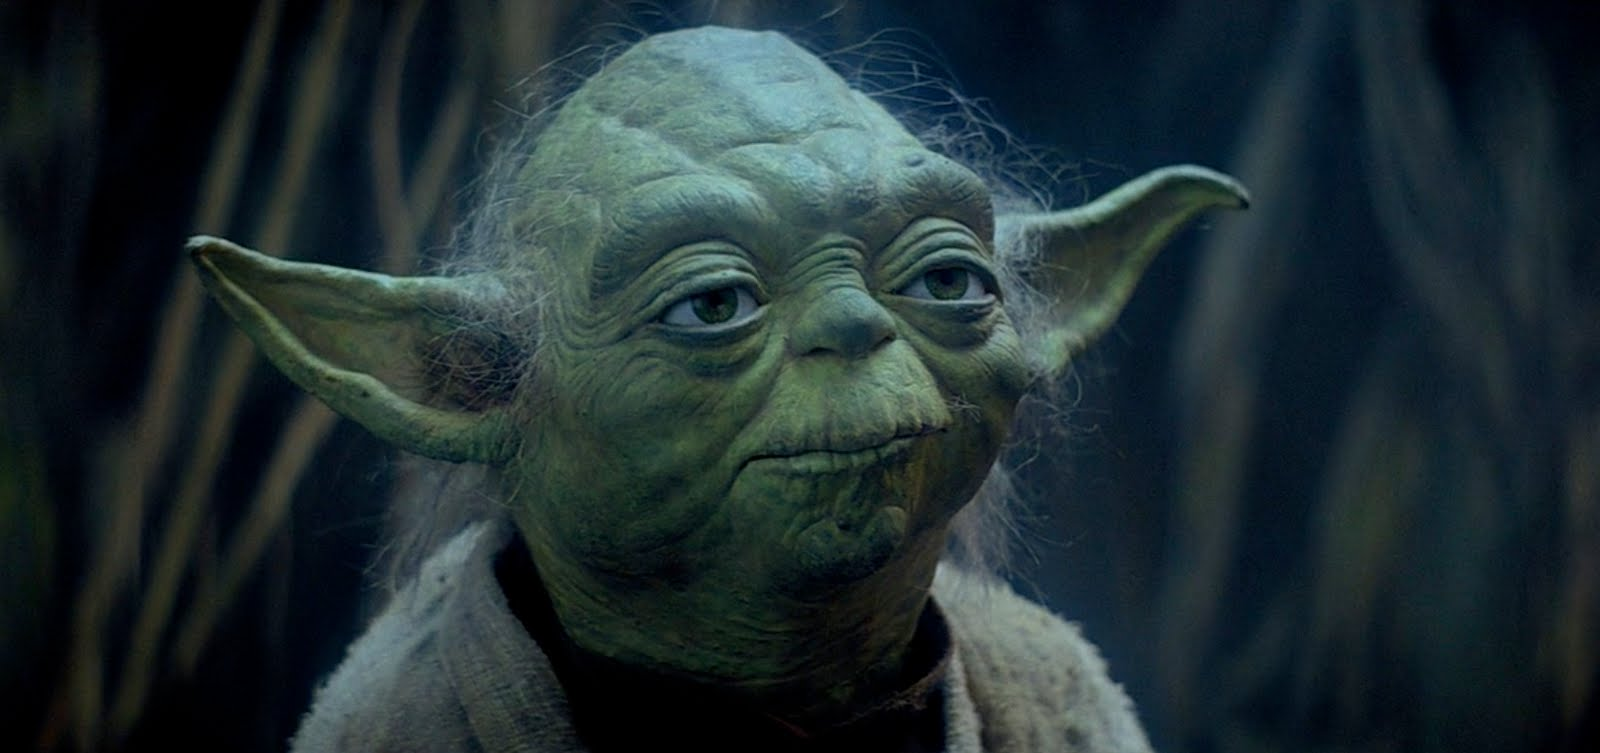 Yoda the empire strikes back